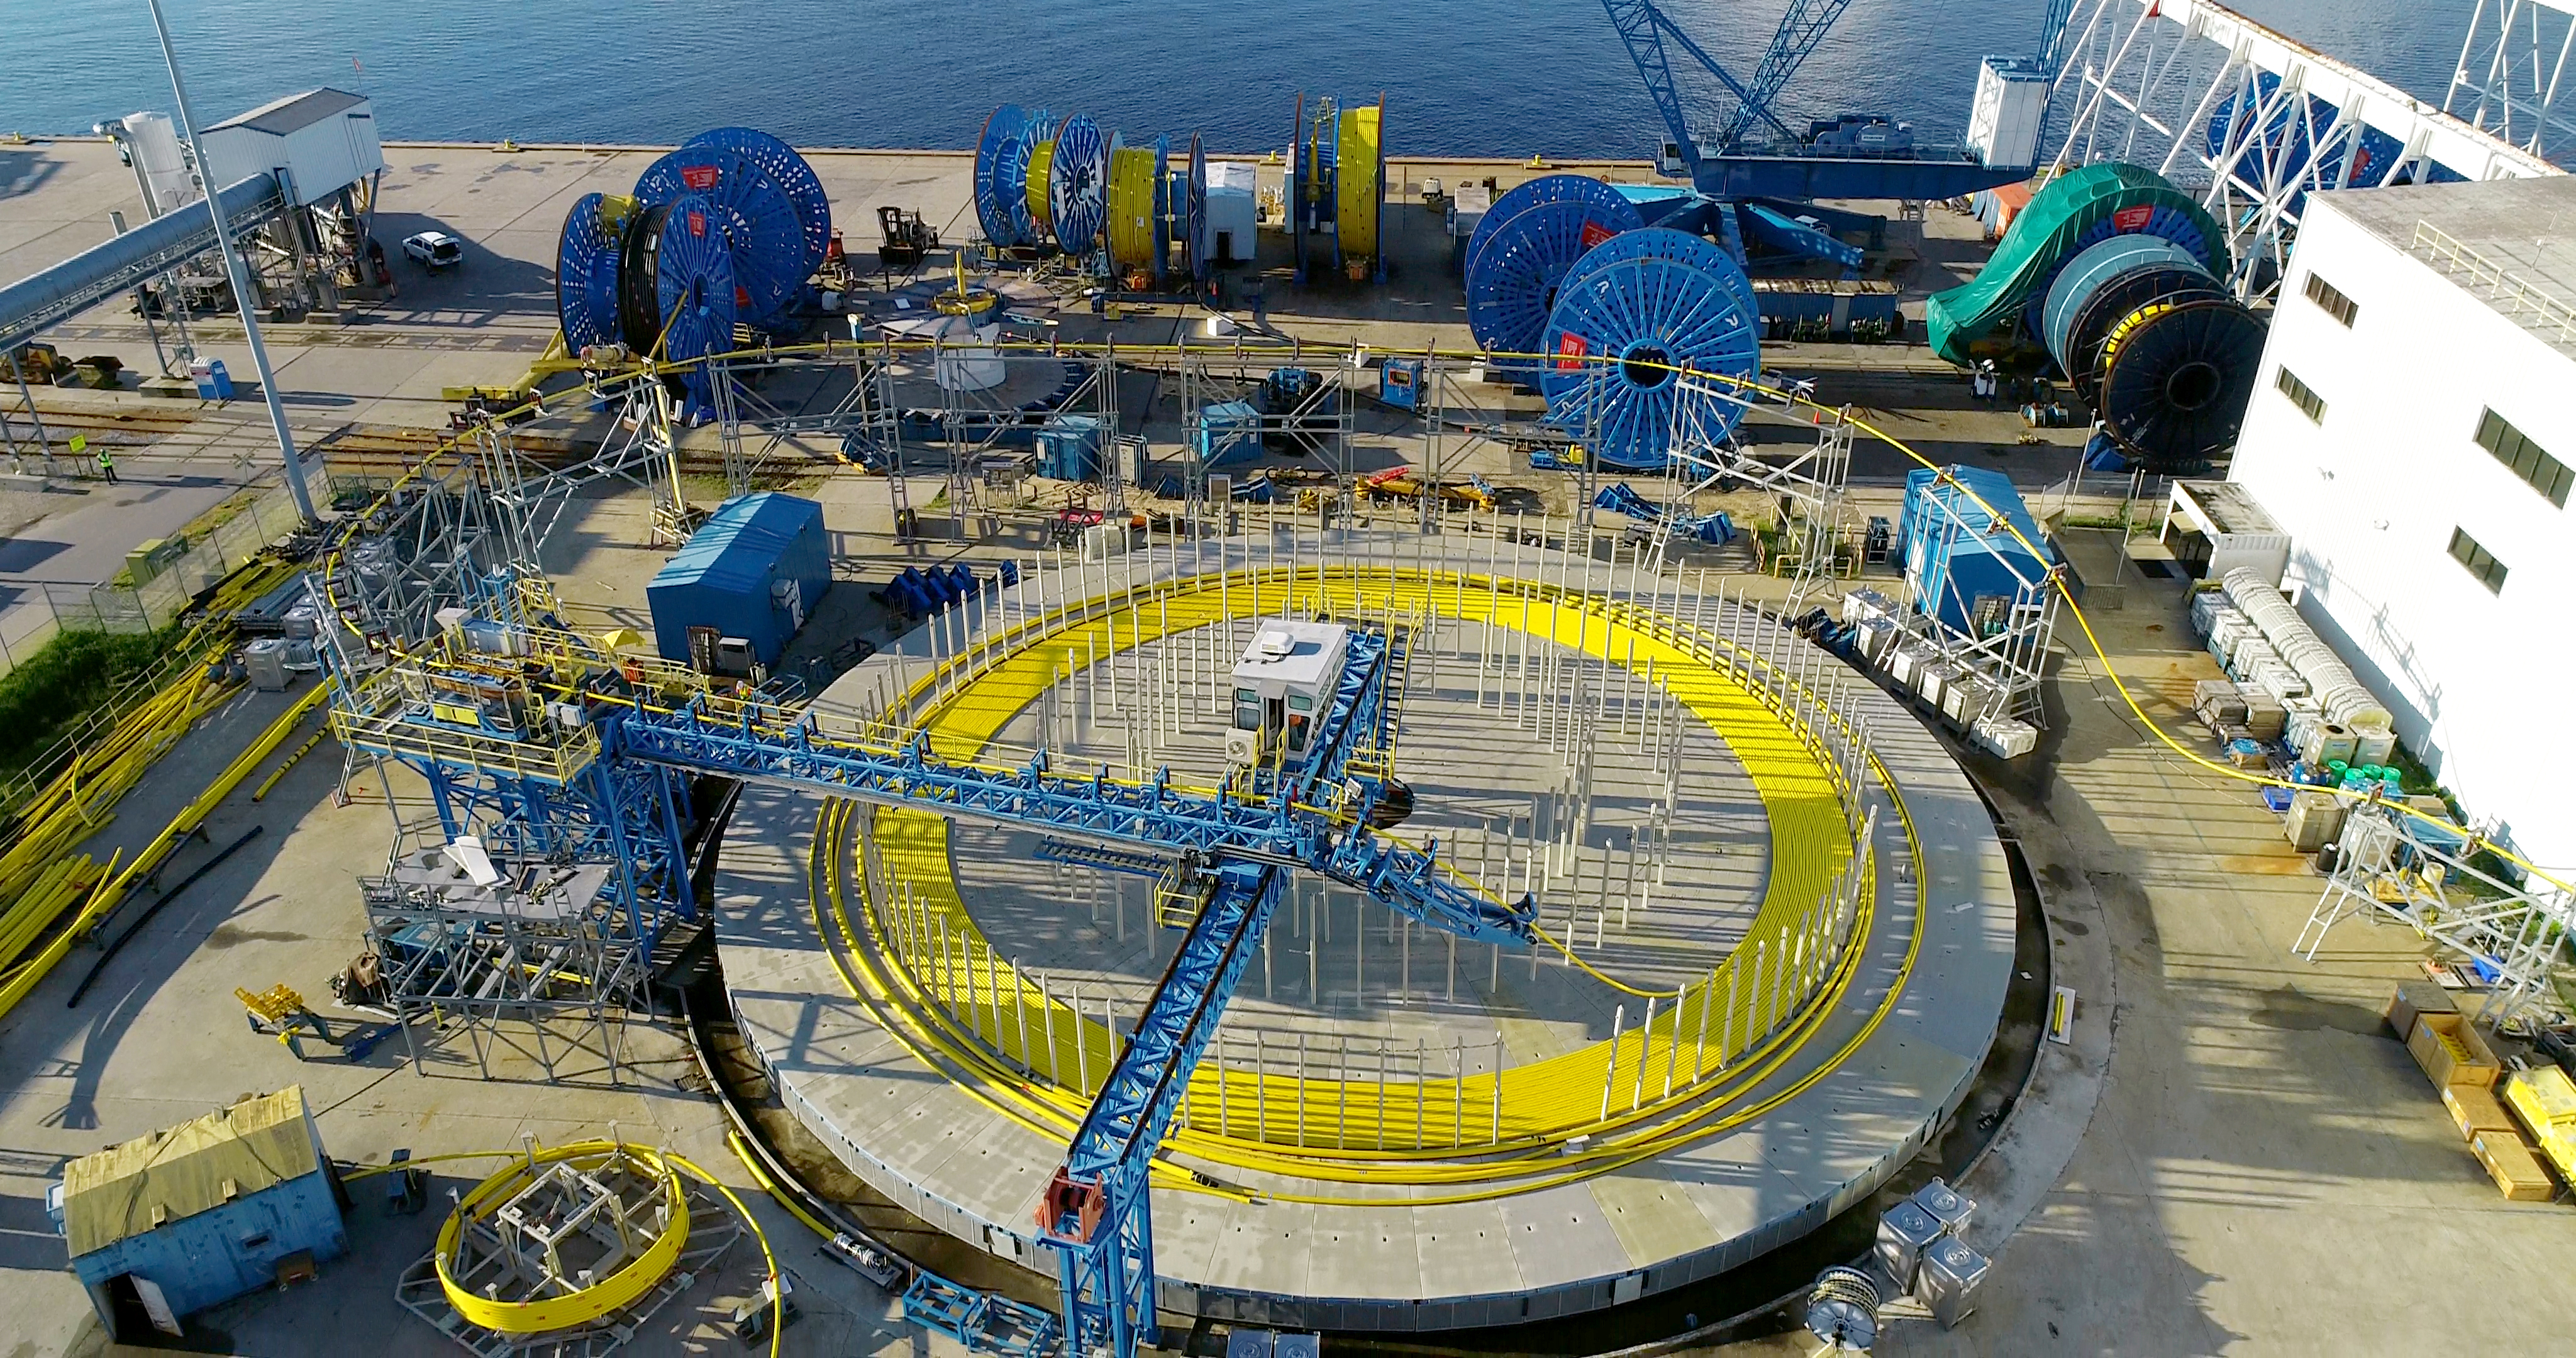 Oceaneering's umbilicals manufacturing facility is located in Panama City, Fla. (Source: Oceaneering)